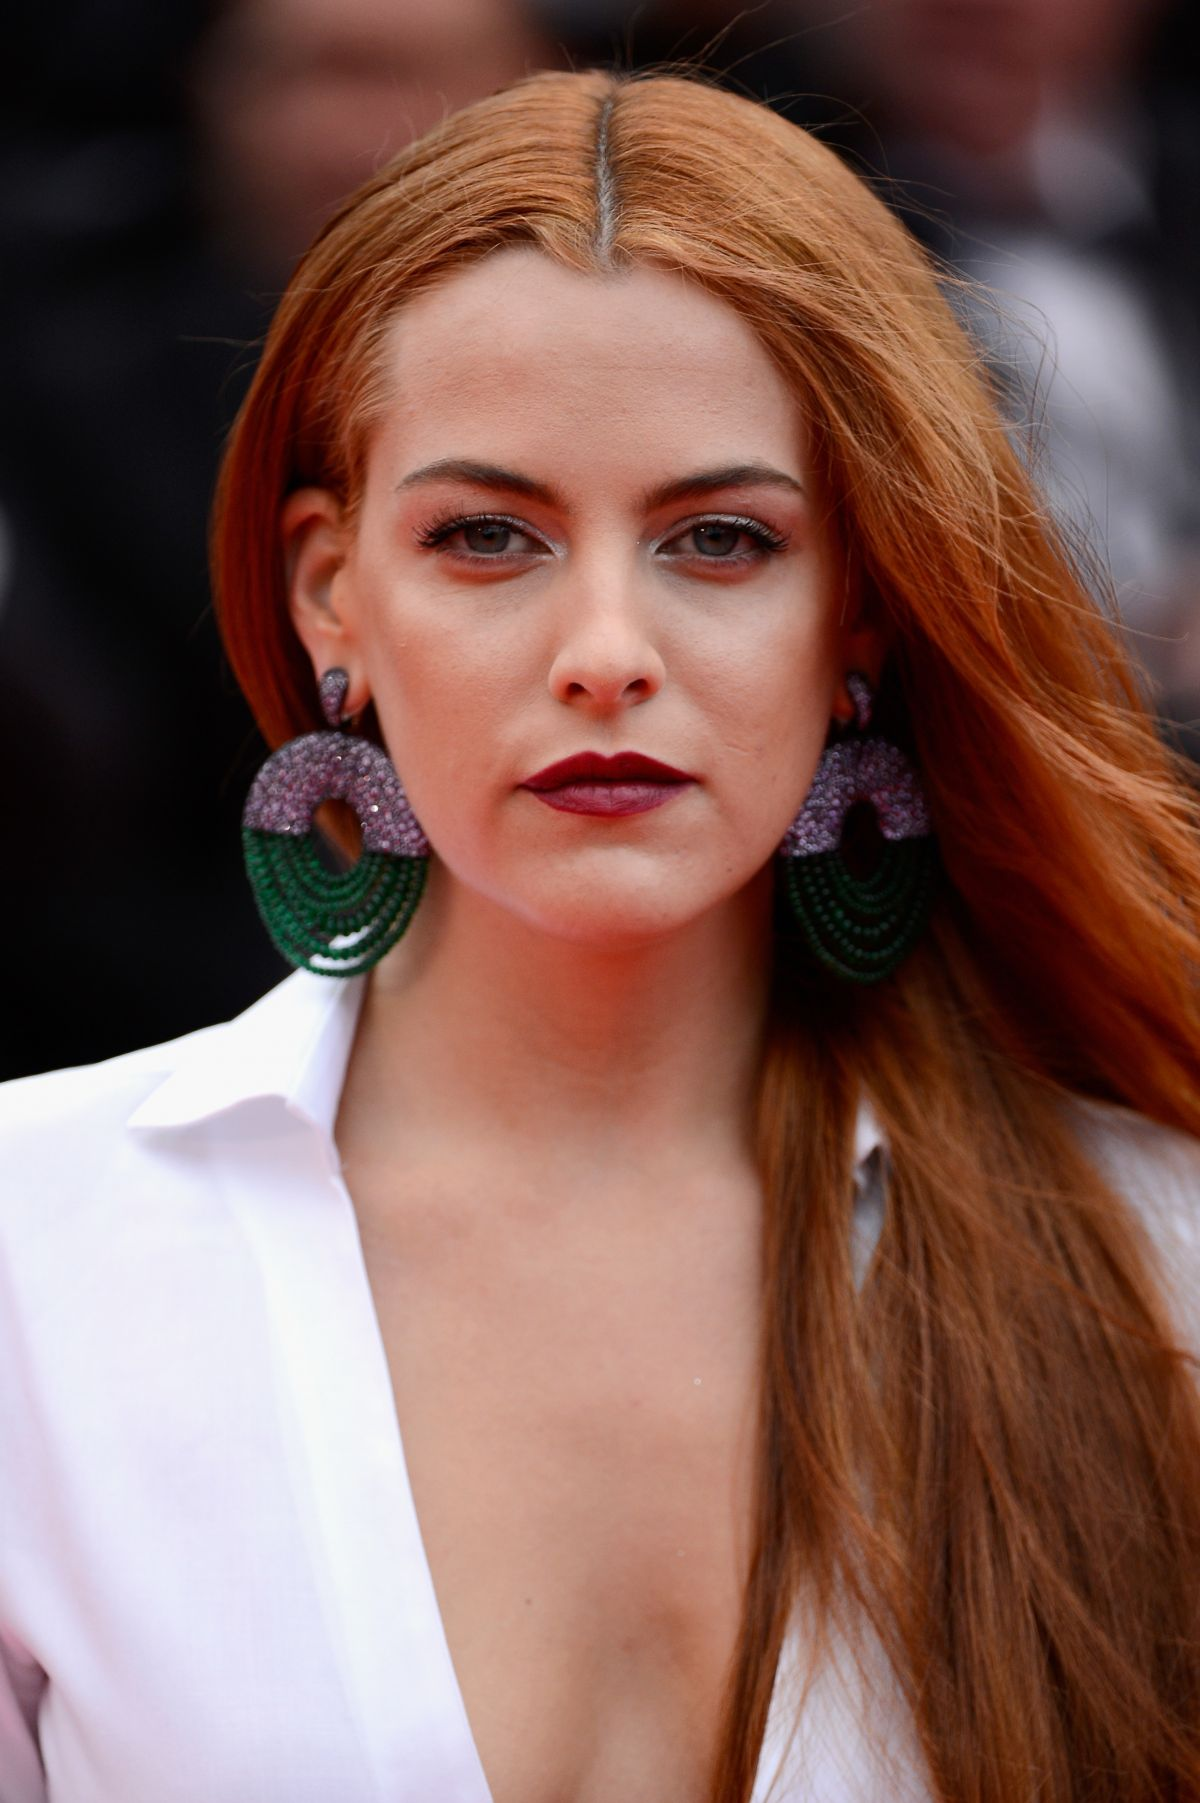 riley keough hd wallpapers for desktop download